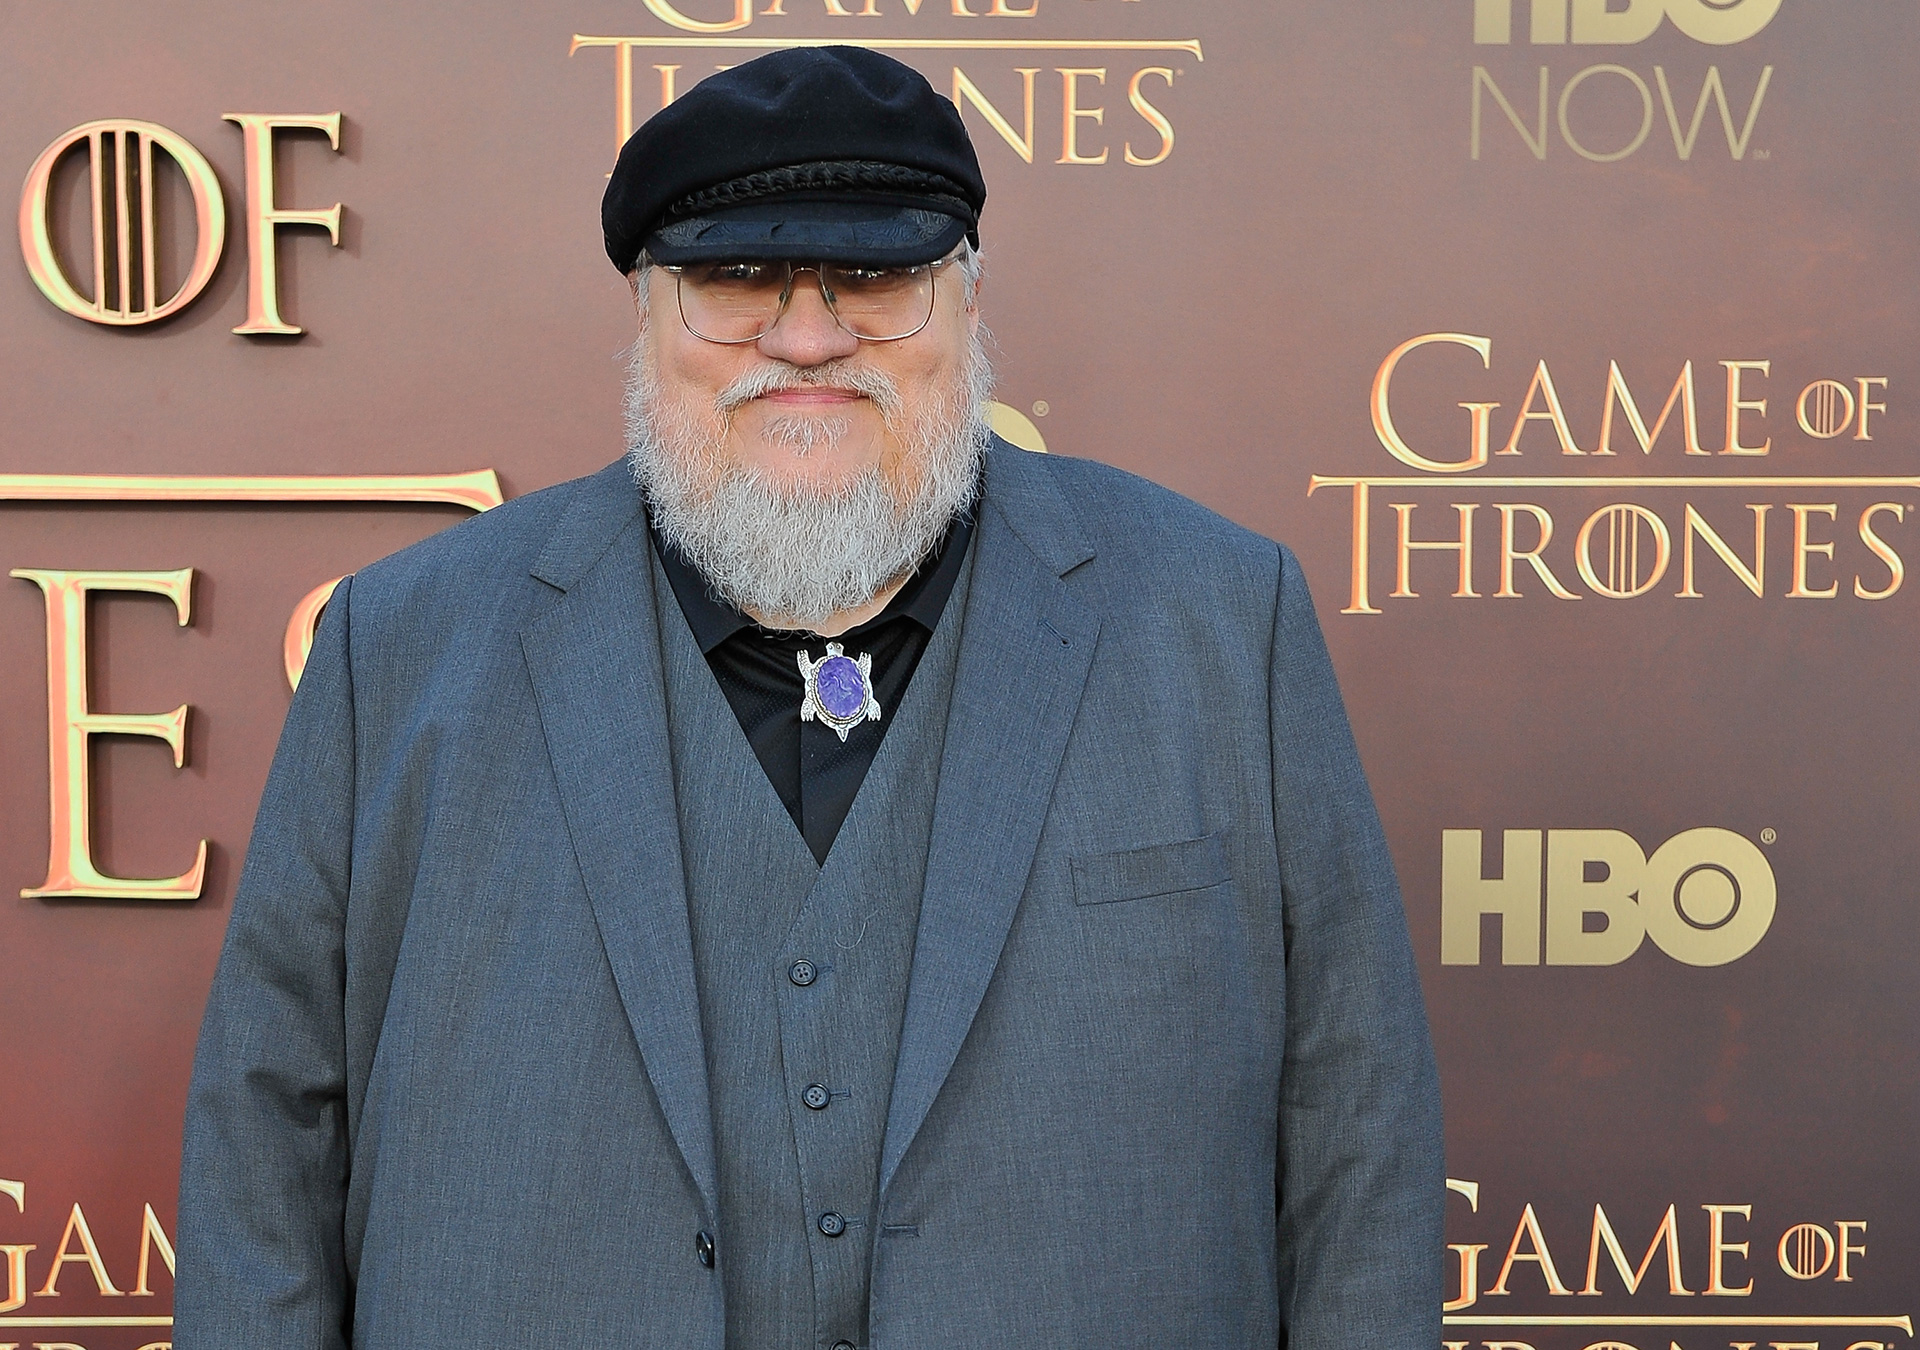 Everything George R.R. Martin has said about Game of Thrones since the finale